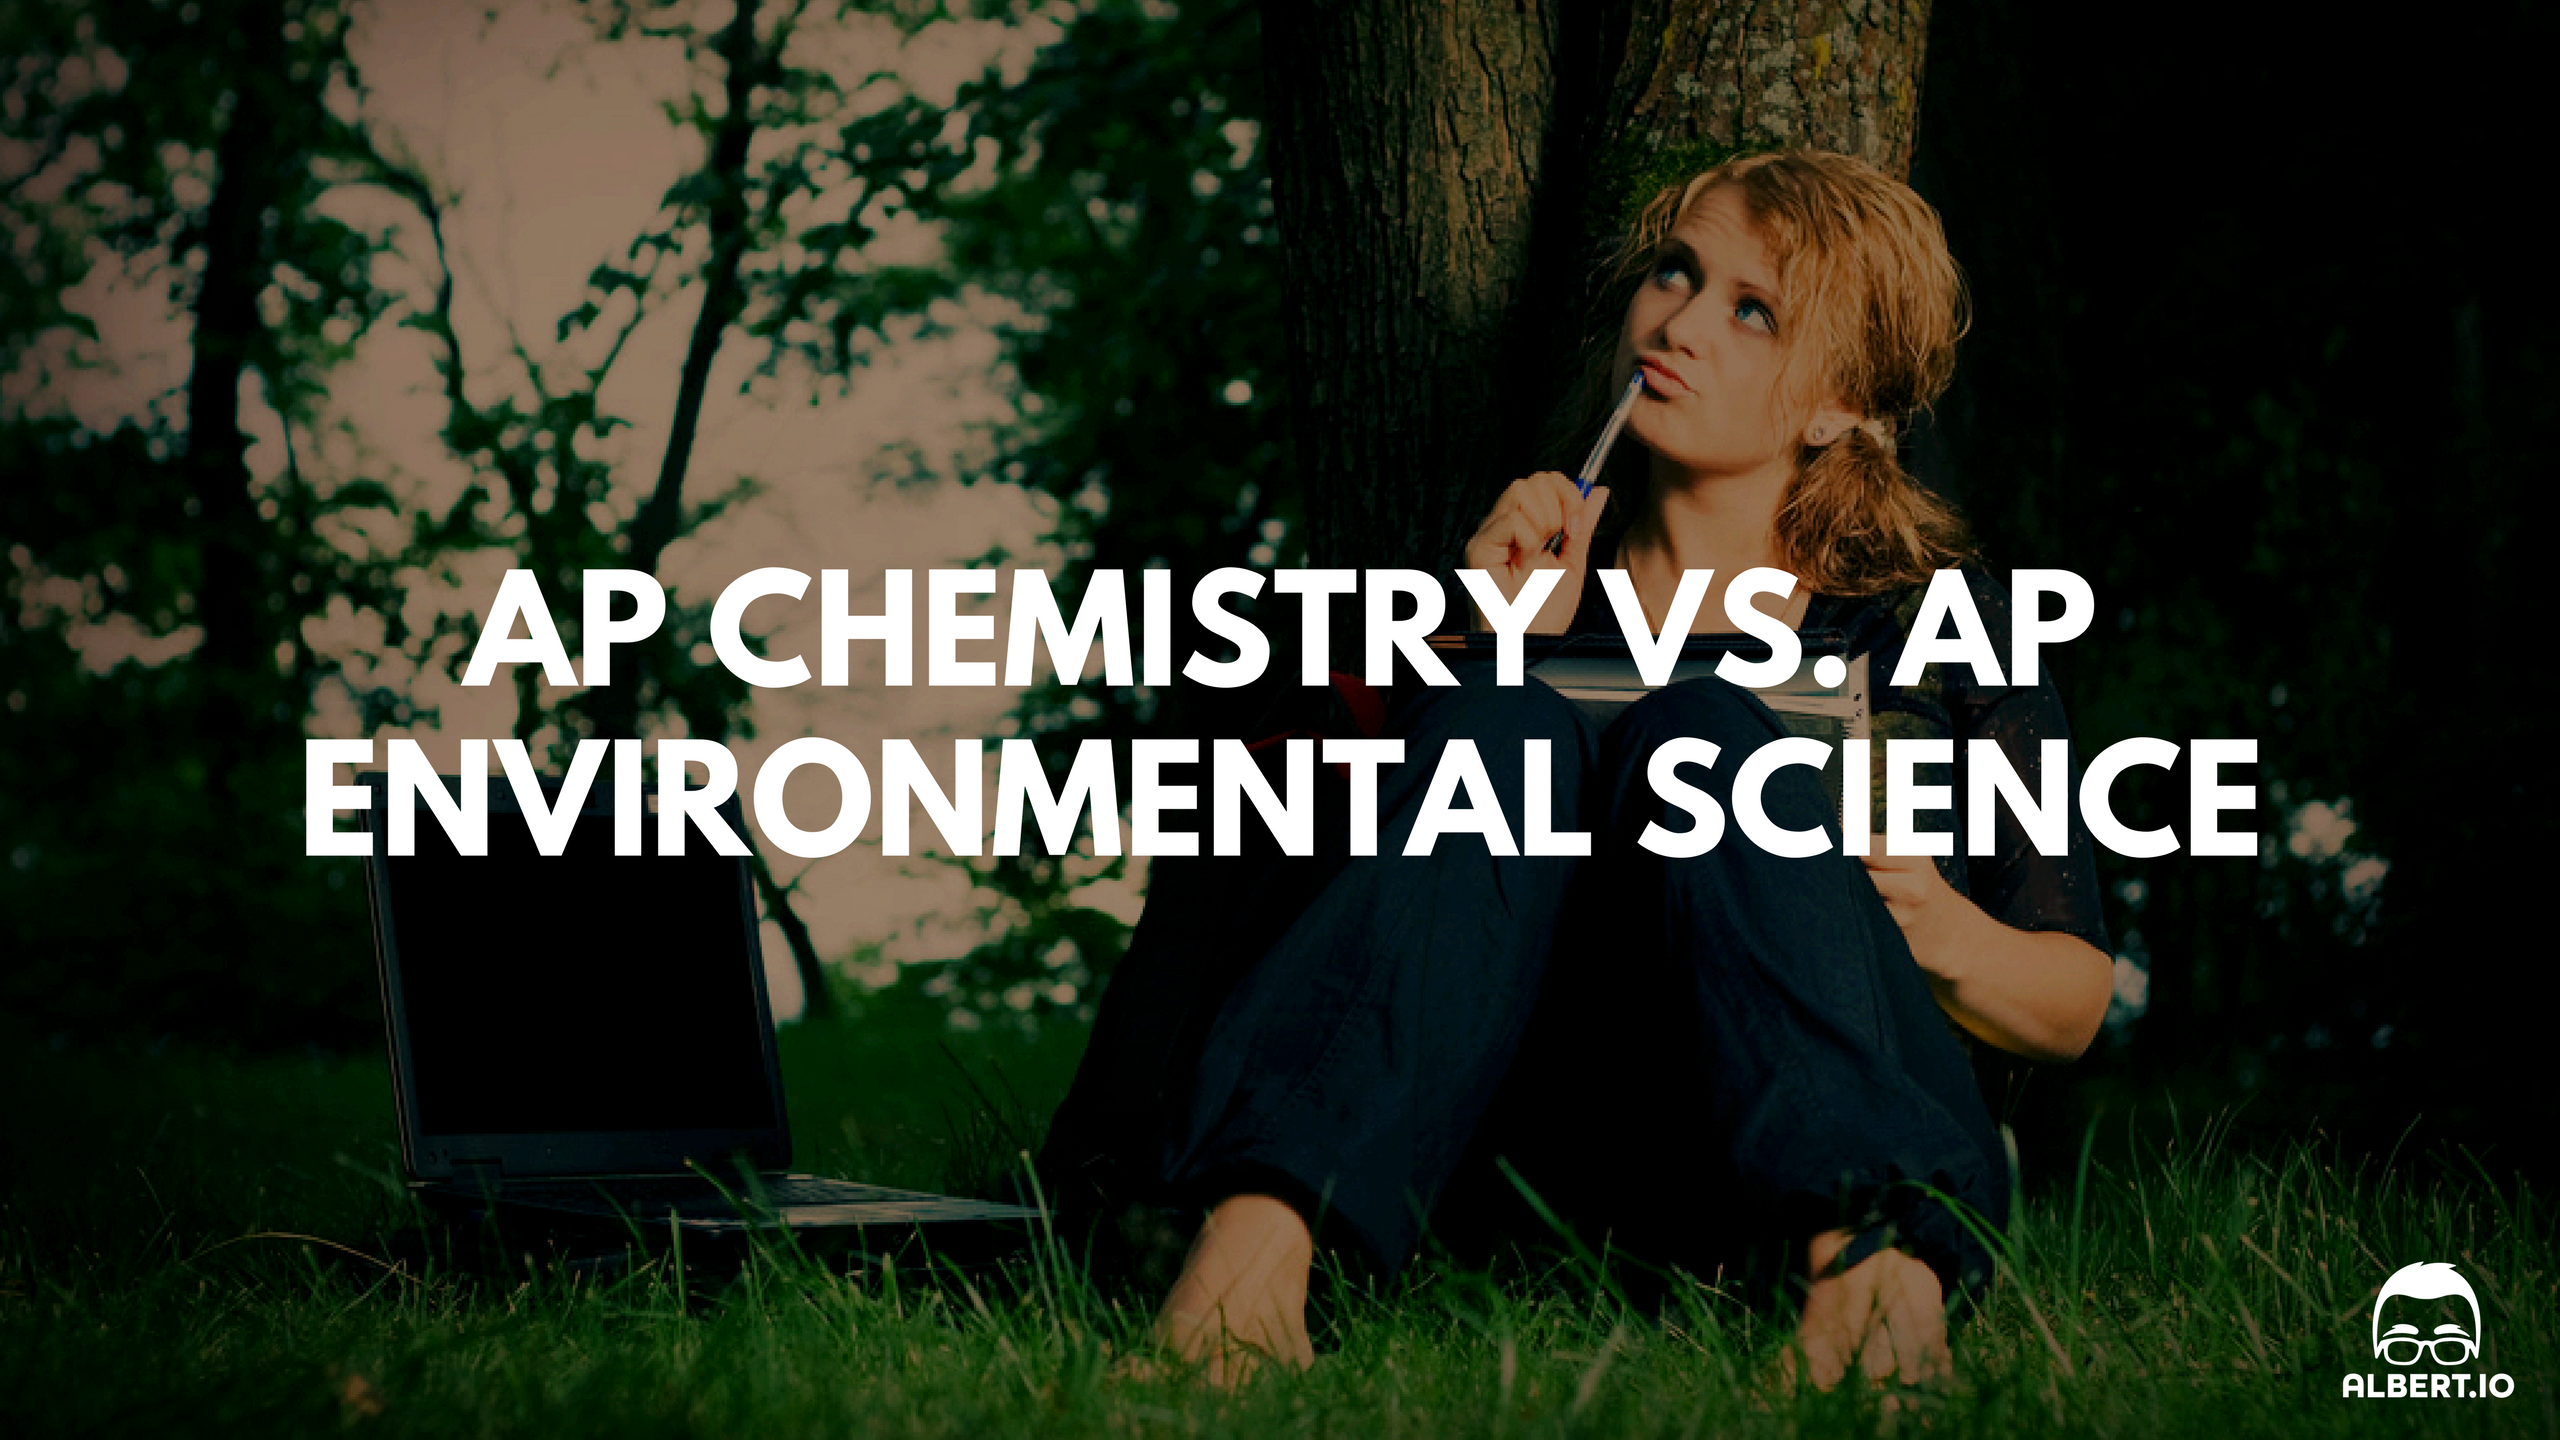 AP Chemistry vs. AP Environmental Science